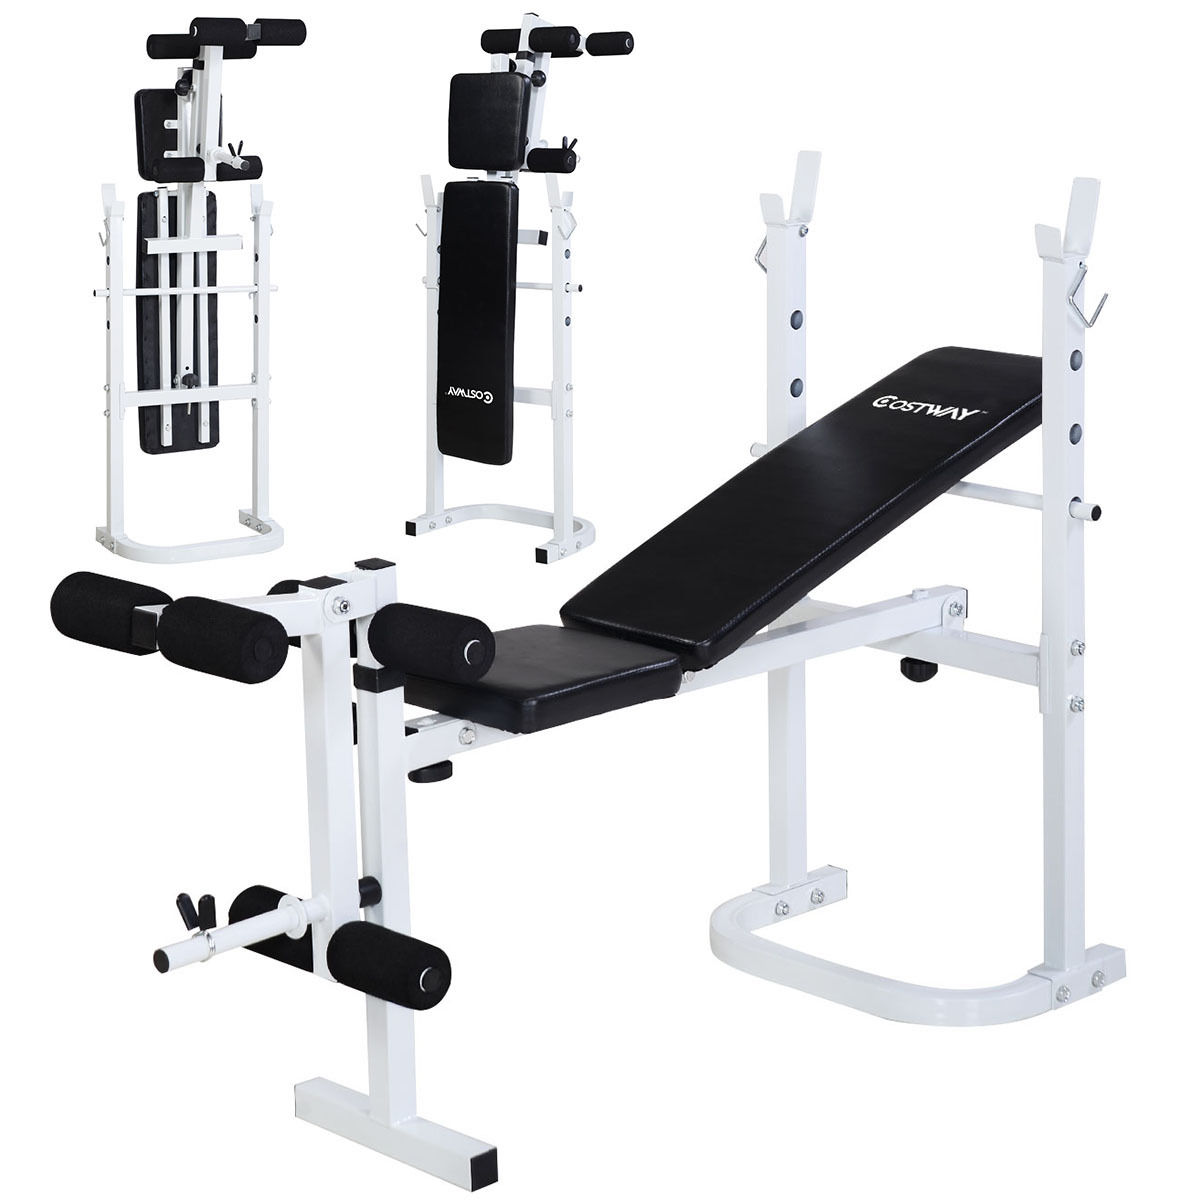 Awesome Costway Olympic Folding Weight Bench Incline Lift Workout Press Home    Walmart.com